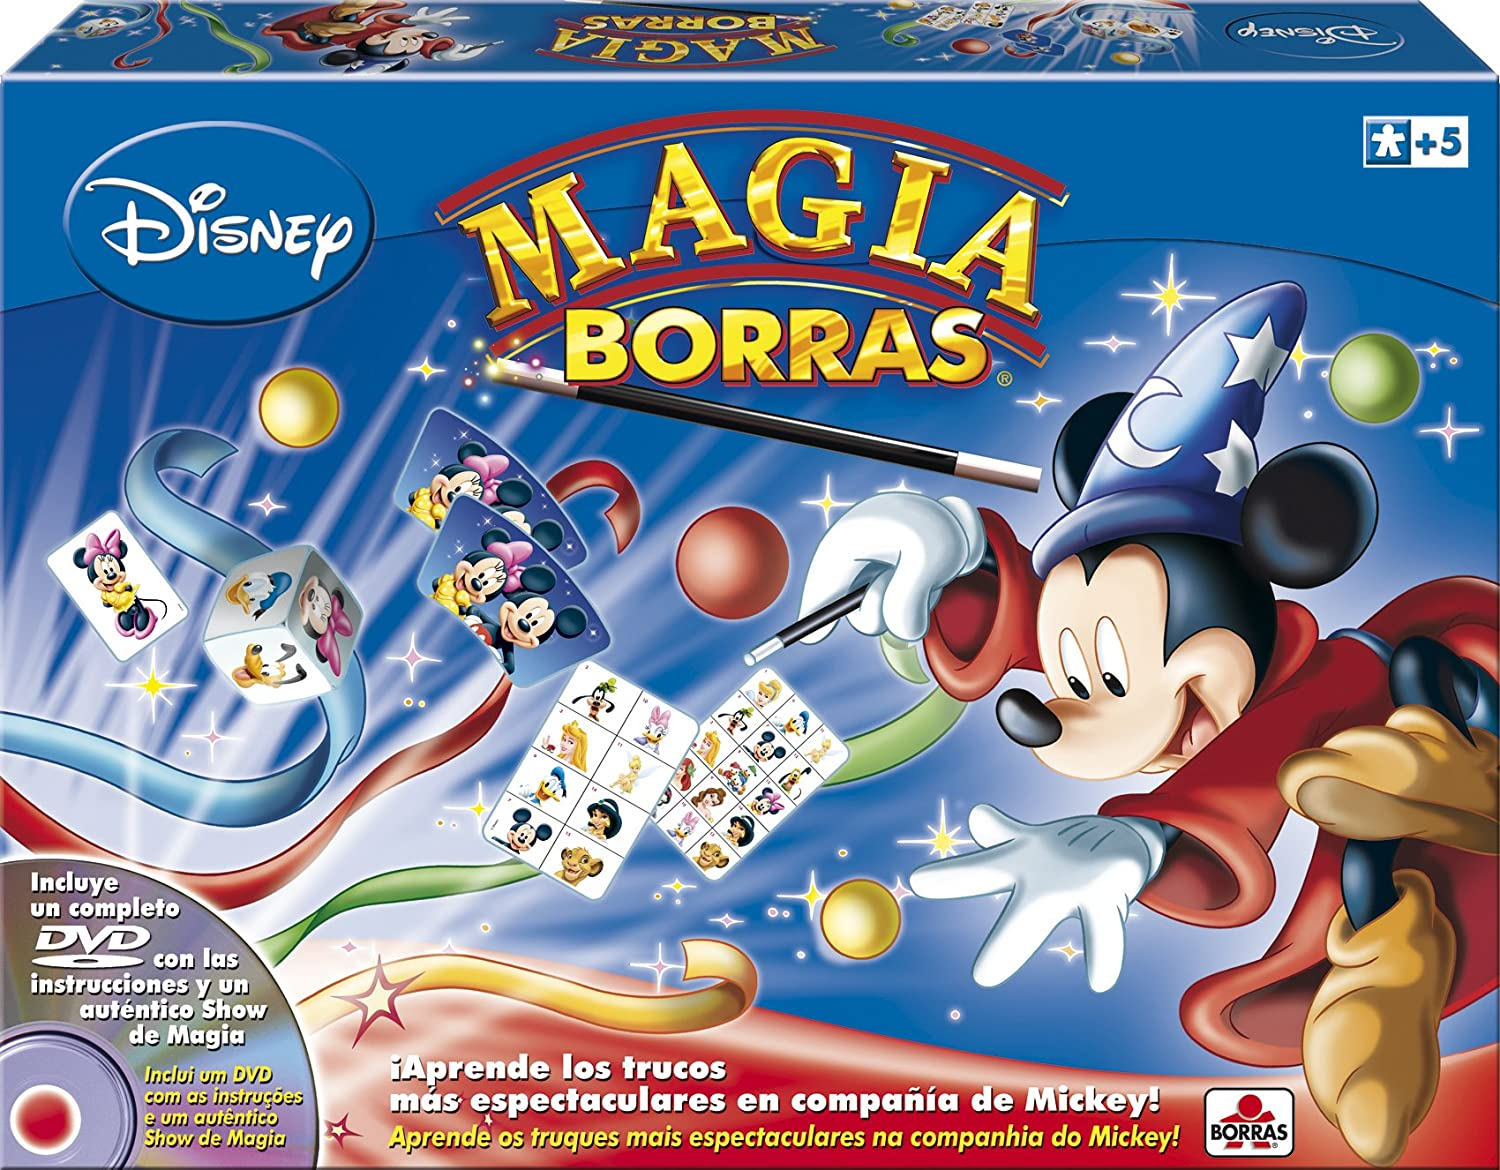 Borras- Magia Edición Mickey Magic, 15 trucos, contiene DVD, a ...